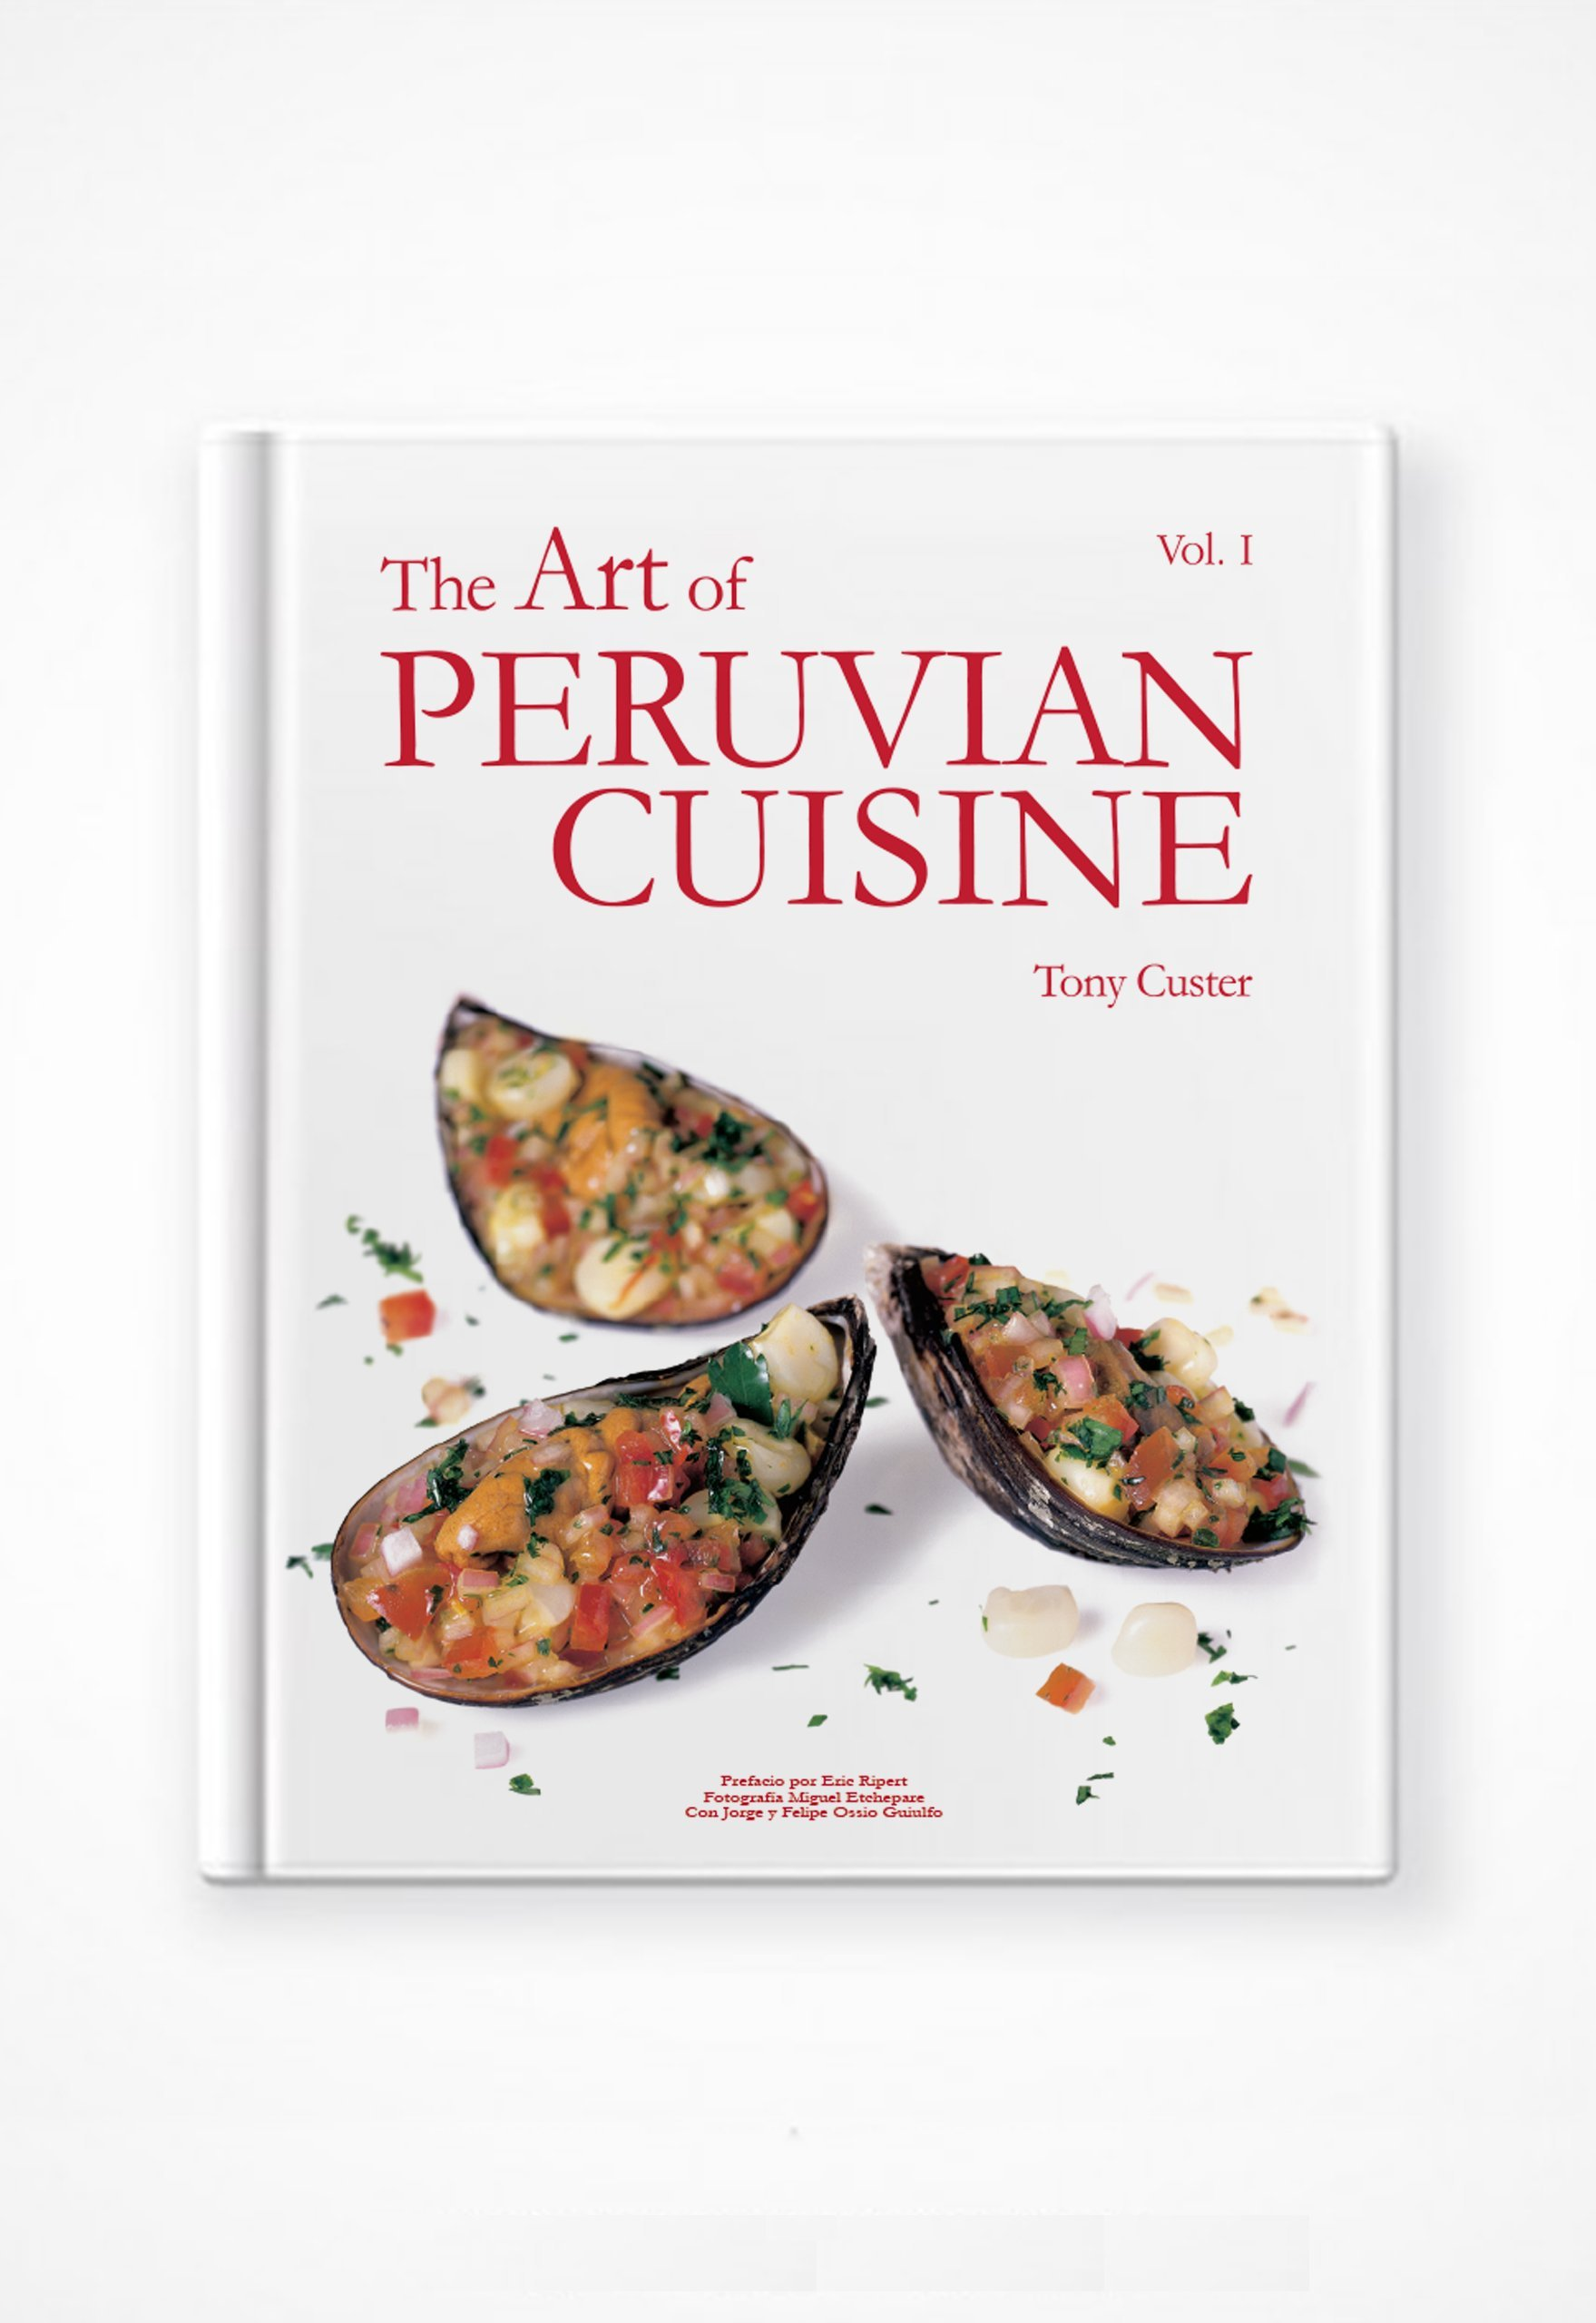 The art of peruvian cuisine vol i tony custer miguel etchepare the art of peruvian cuisine vol i tony custer miguel etchepare jorge eric ripert 9789972920301 amazon books forumfinder Image collections